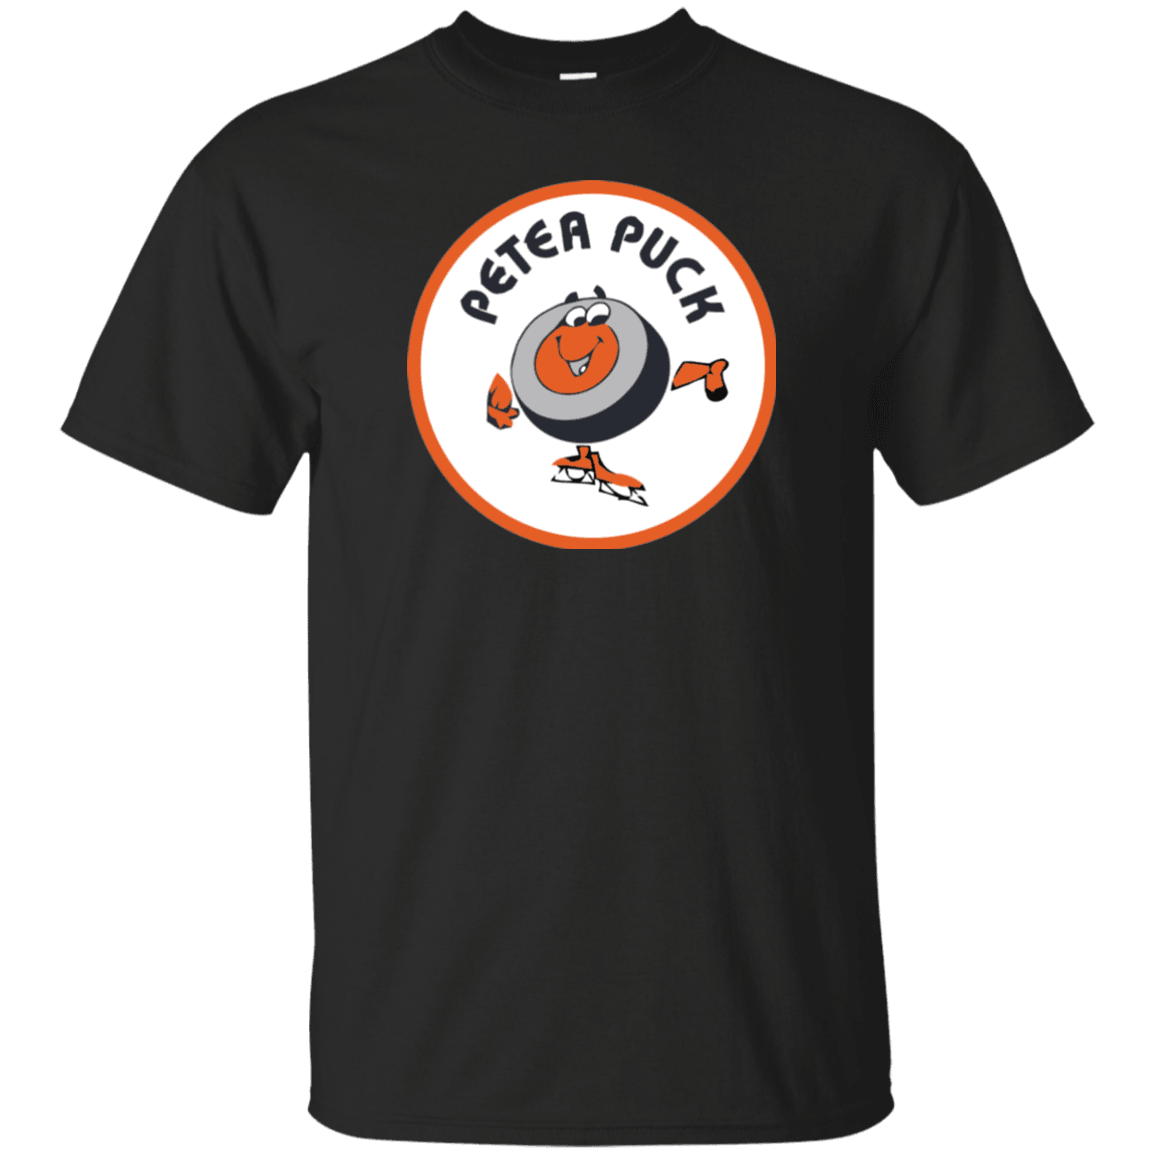 Cyber Special Retro Peter Puck T-Shirt